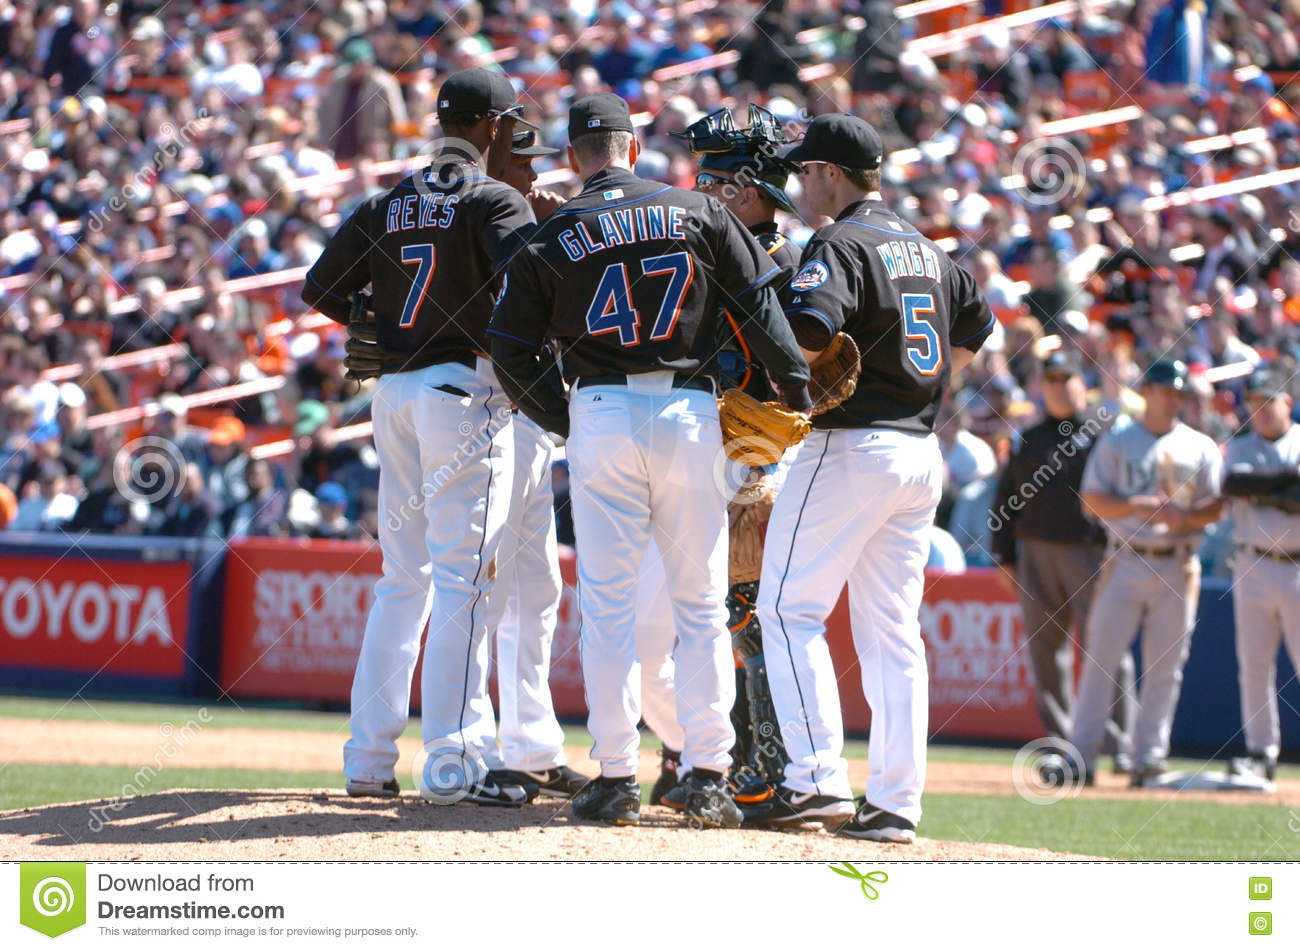 Coronavirius - Sports Related - Page 4 Meeting-mound-new-york-mets-players-jose-reyes-tom-glavine-paul-lo-duca-david-wright-anderson-hernandez-meet-73649972